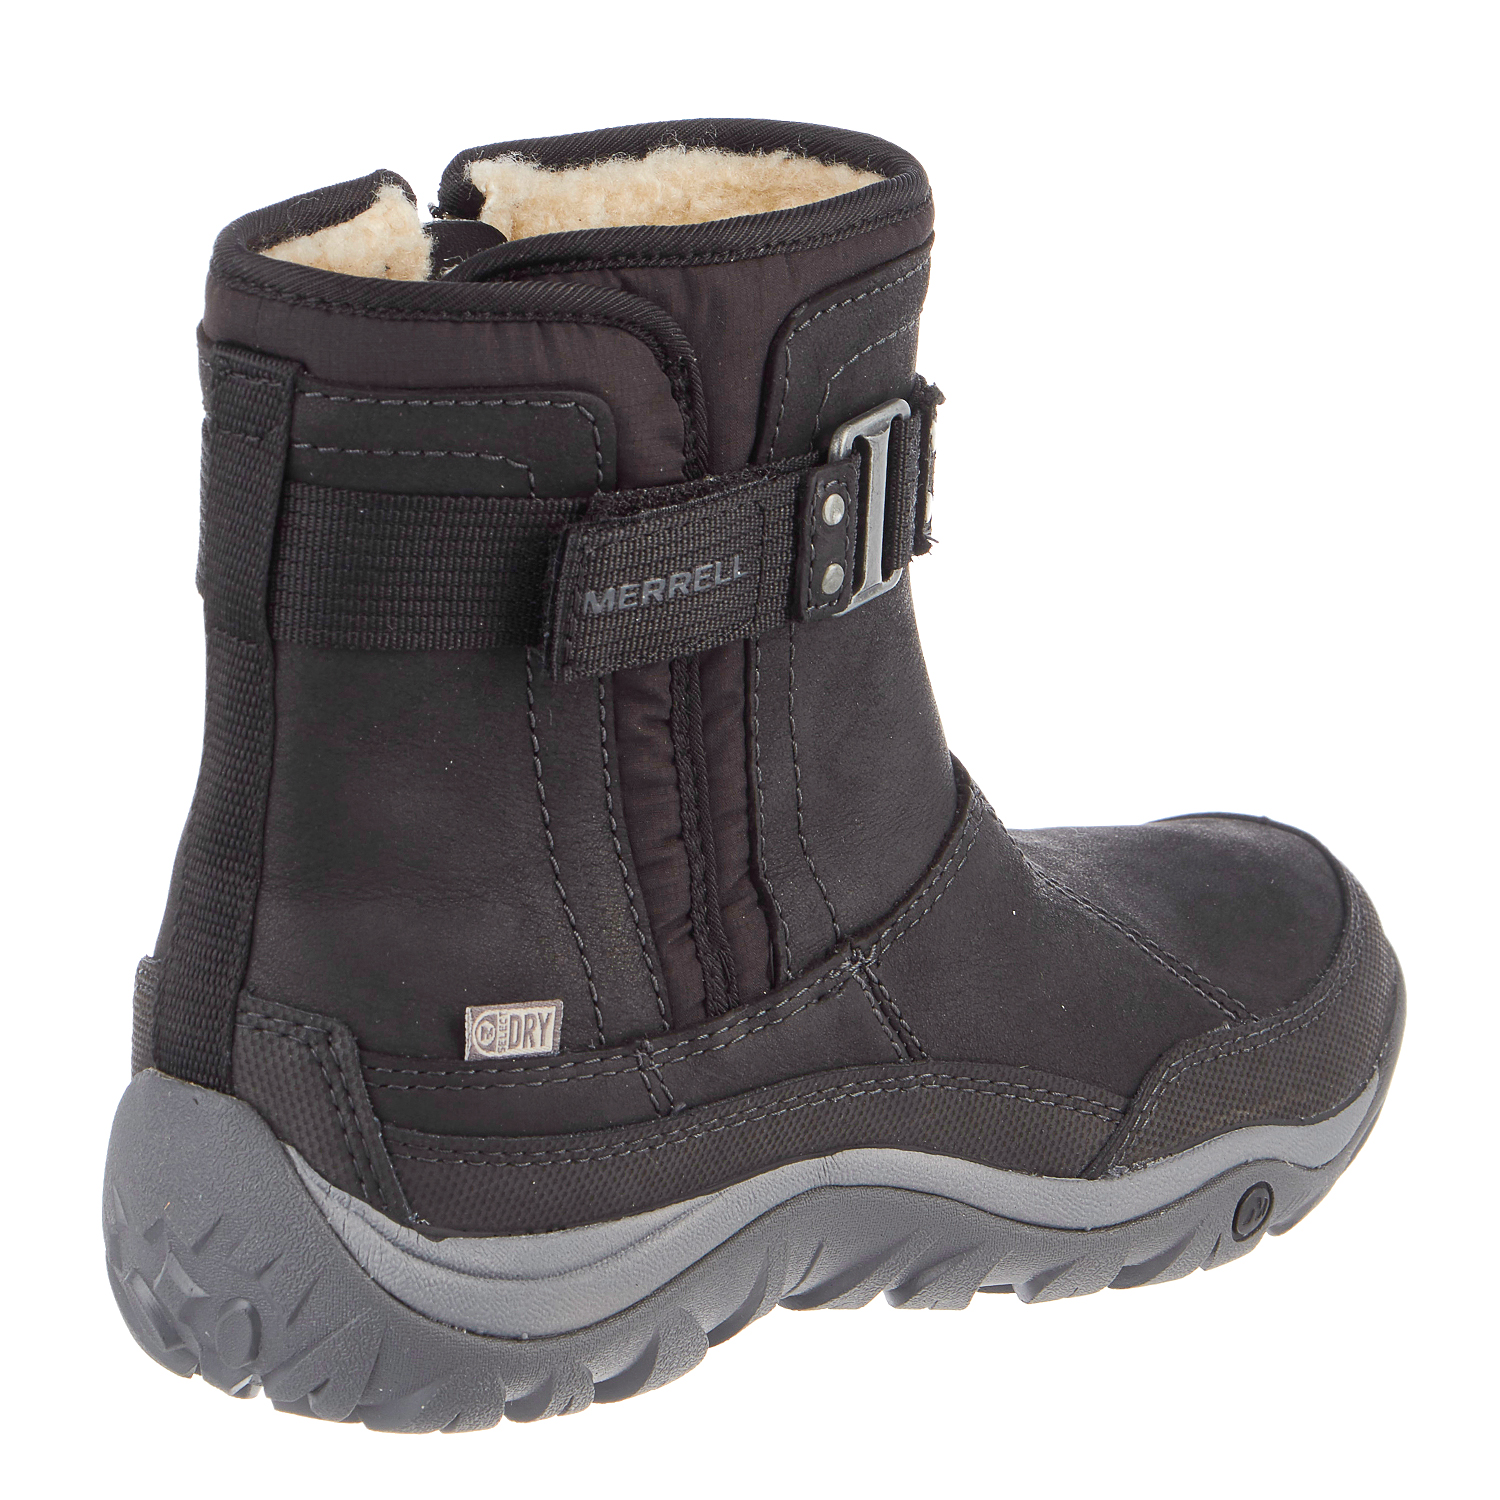 Fantastic Details About Womens Merrell Captiva Buckleup Waterproof Boots